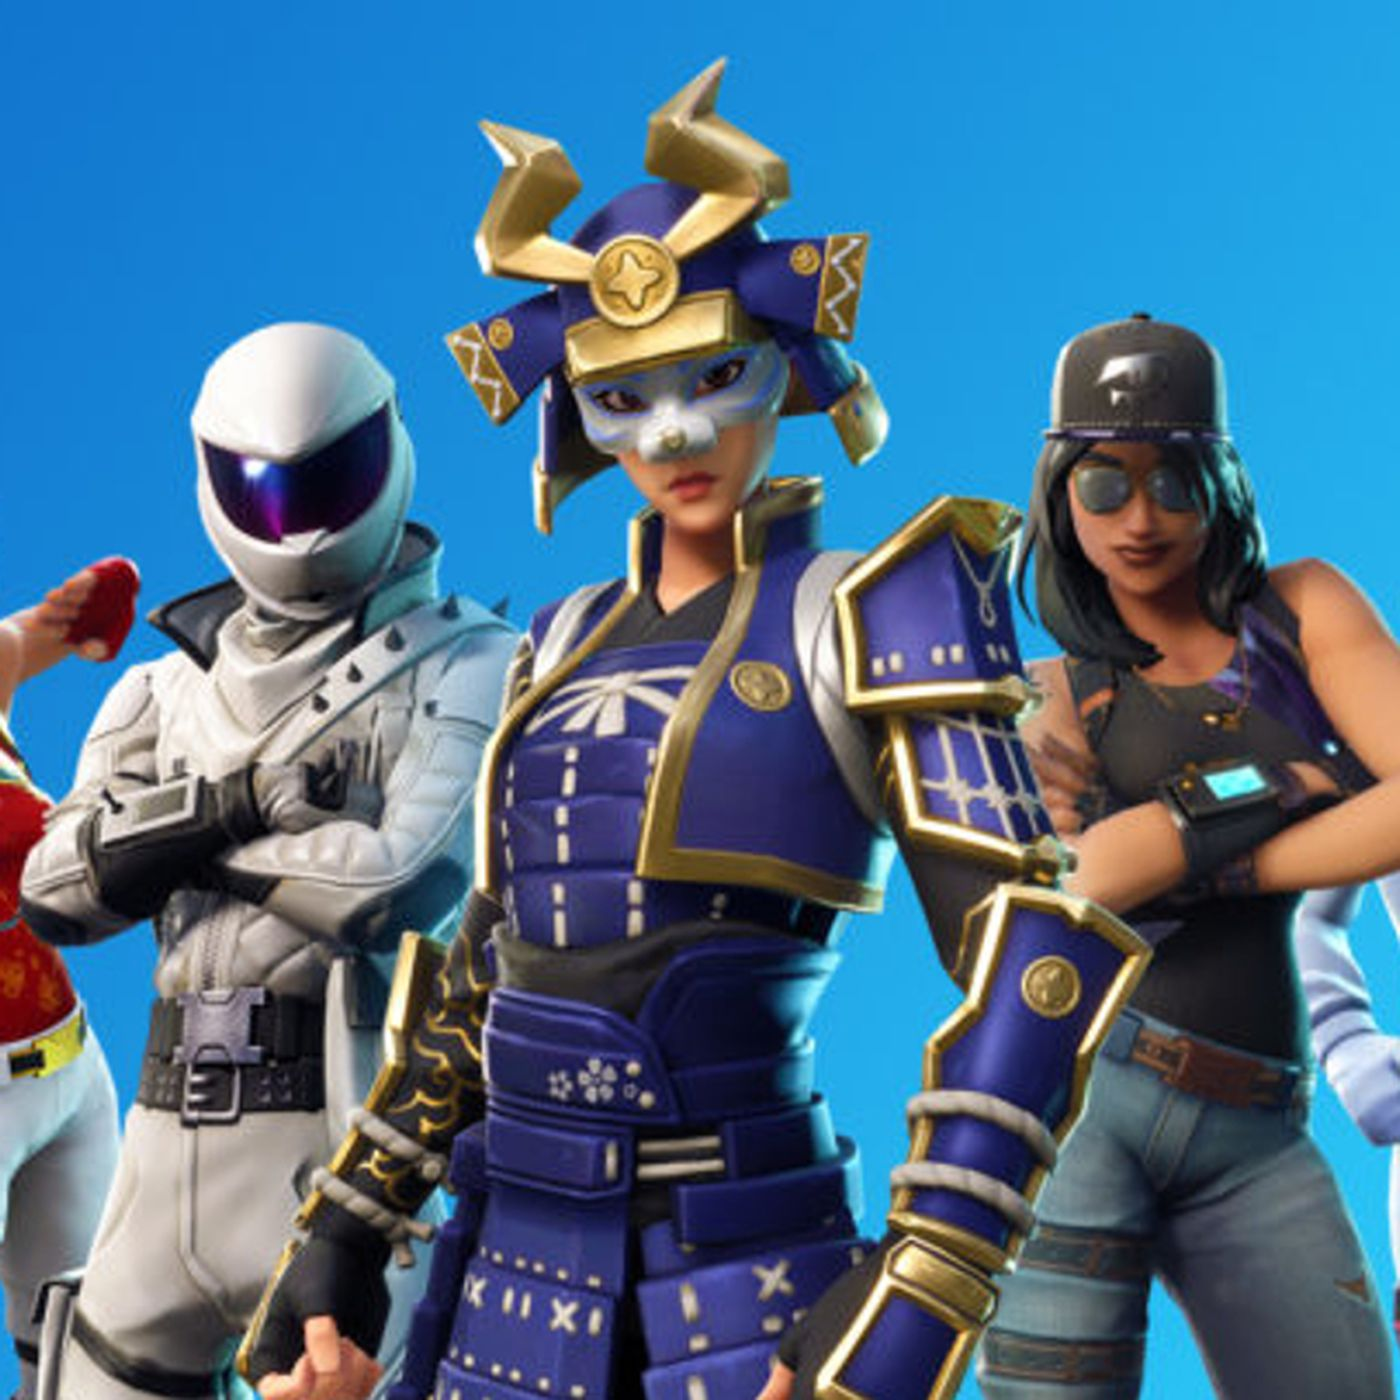 Fortnite' season 9 update: What's new for the upcoming